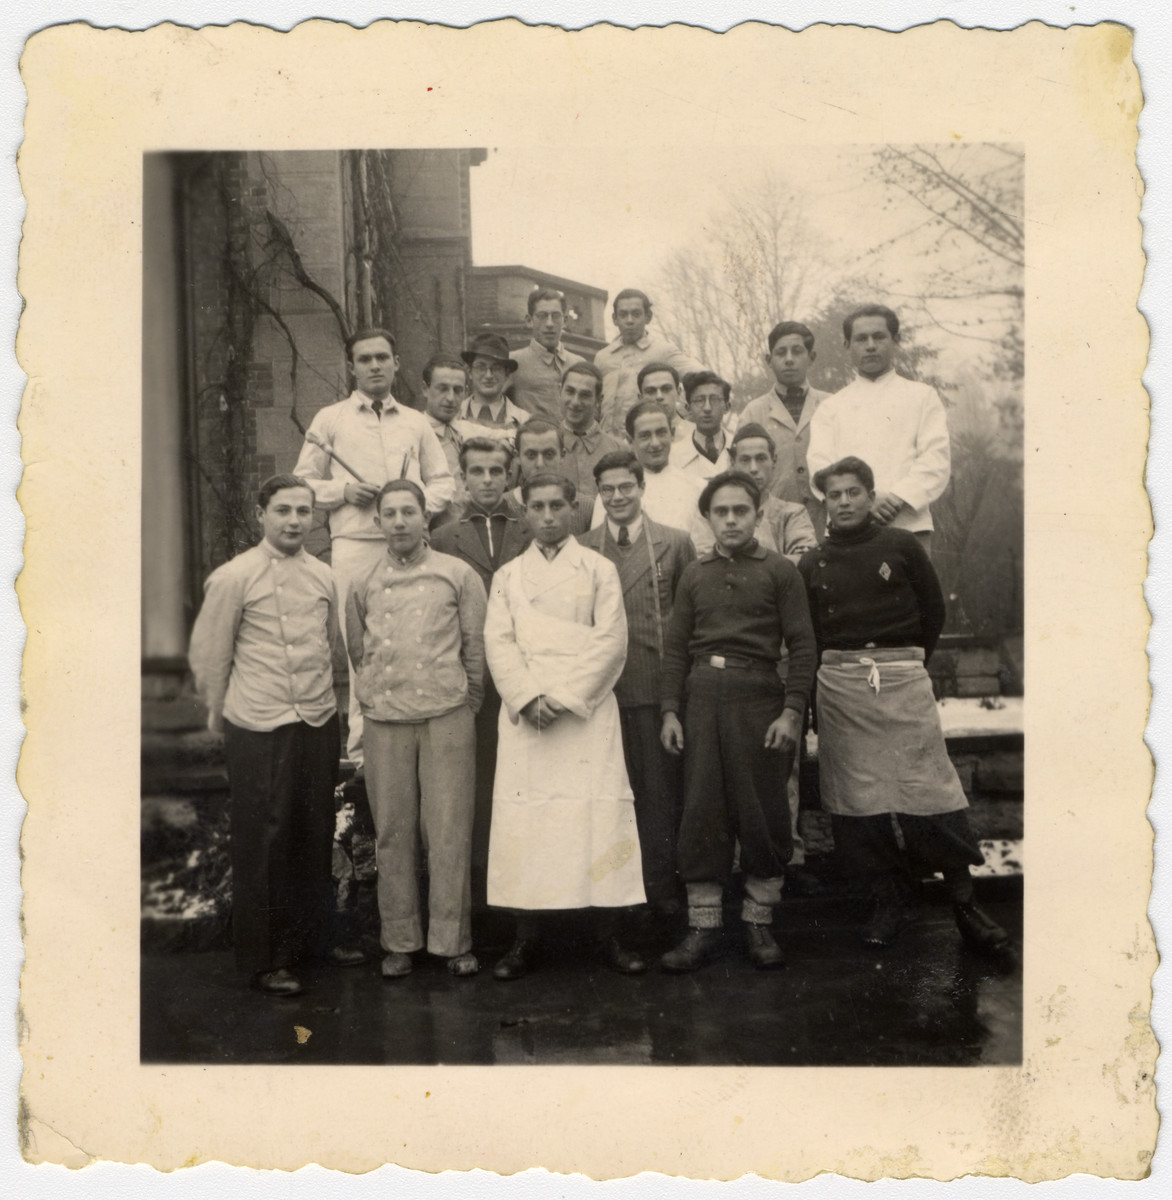 Young men at Rabbi Stern's children's home wearing the work clothes of the trades they were learning.